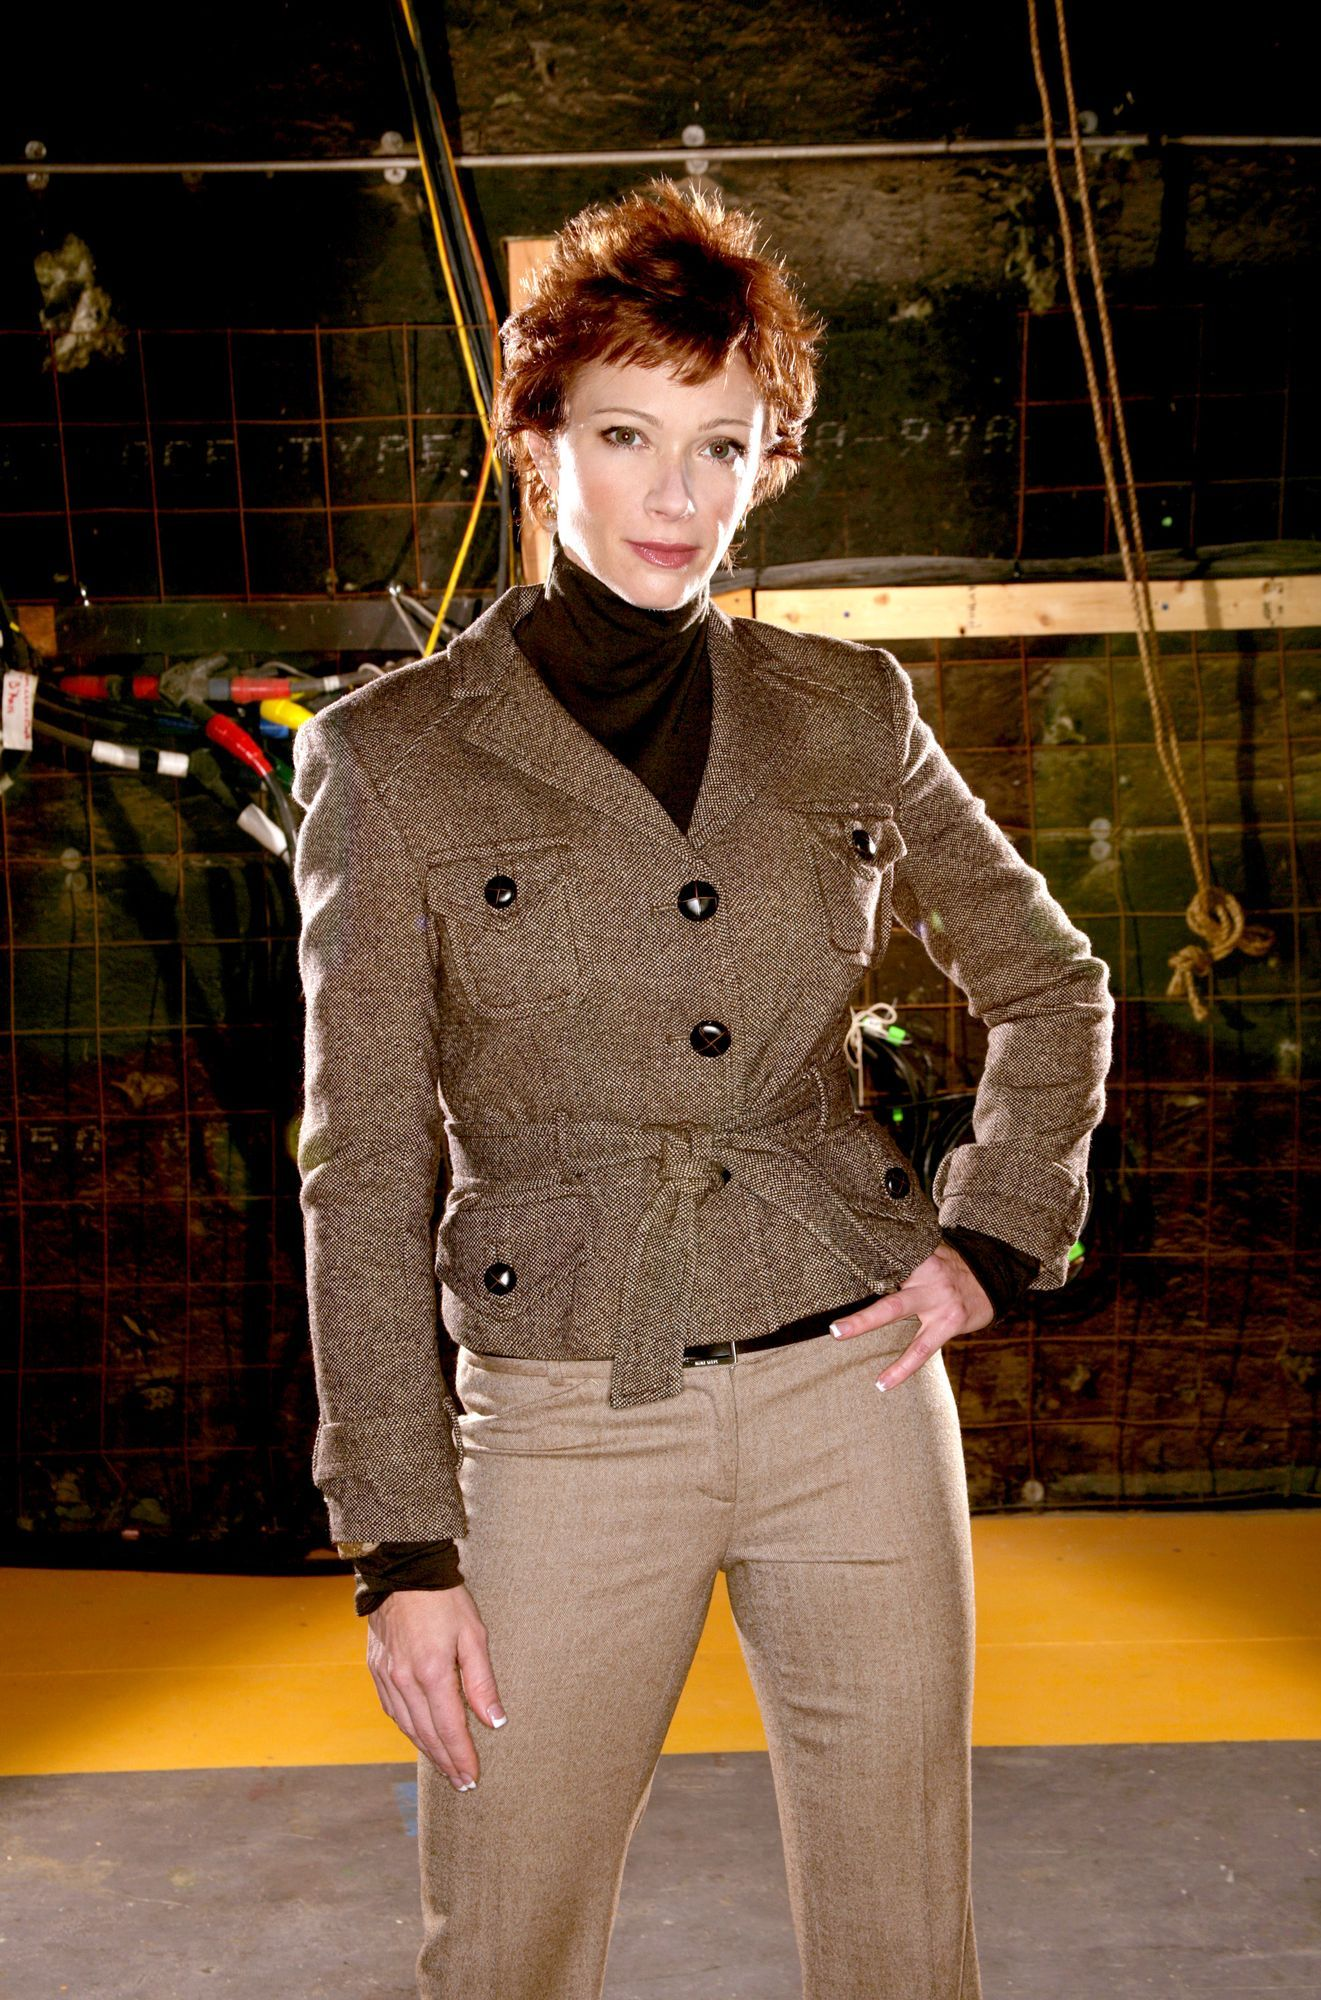 Lauren Holly, who has short red hair in this photo, plays